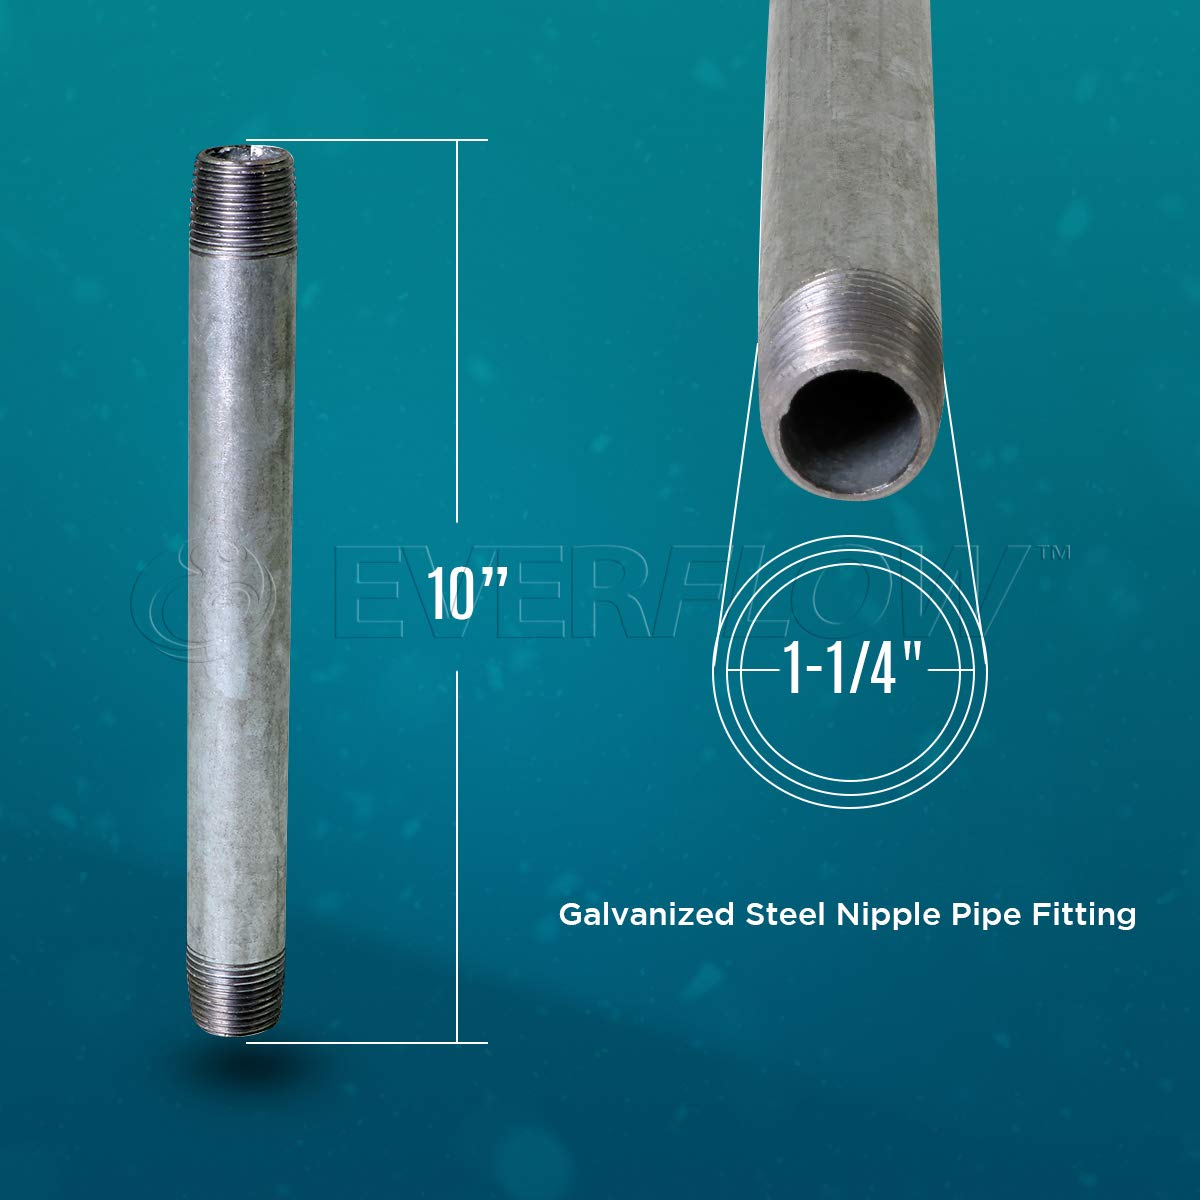 Connectors Used To Build DIY Furniture 1 x 5-1//2 Everflow NPGL1055-10 Pack of 10 Threaded Pipes and Fittings Pre Cut Industrial Steel Nipple Pipe Galvanized